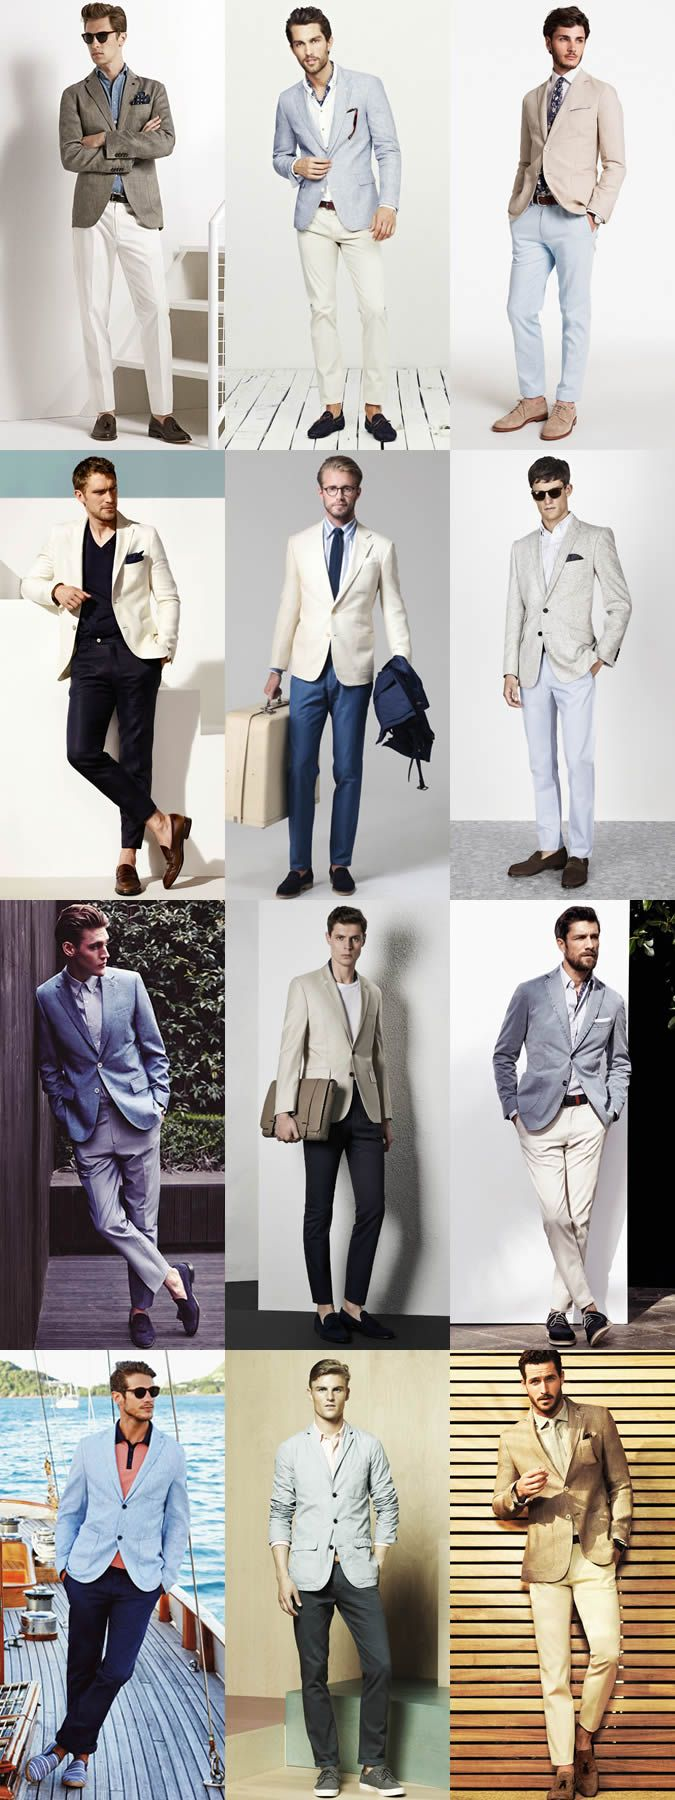 A Guide To Summer Season Layering - http://www.295luv.com/fashion/a-guidemanualguidebook-to-summersummer-timesummer-seasonsummertime-layering.html